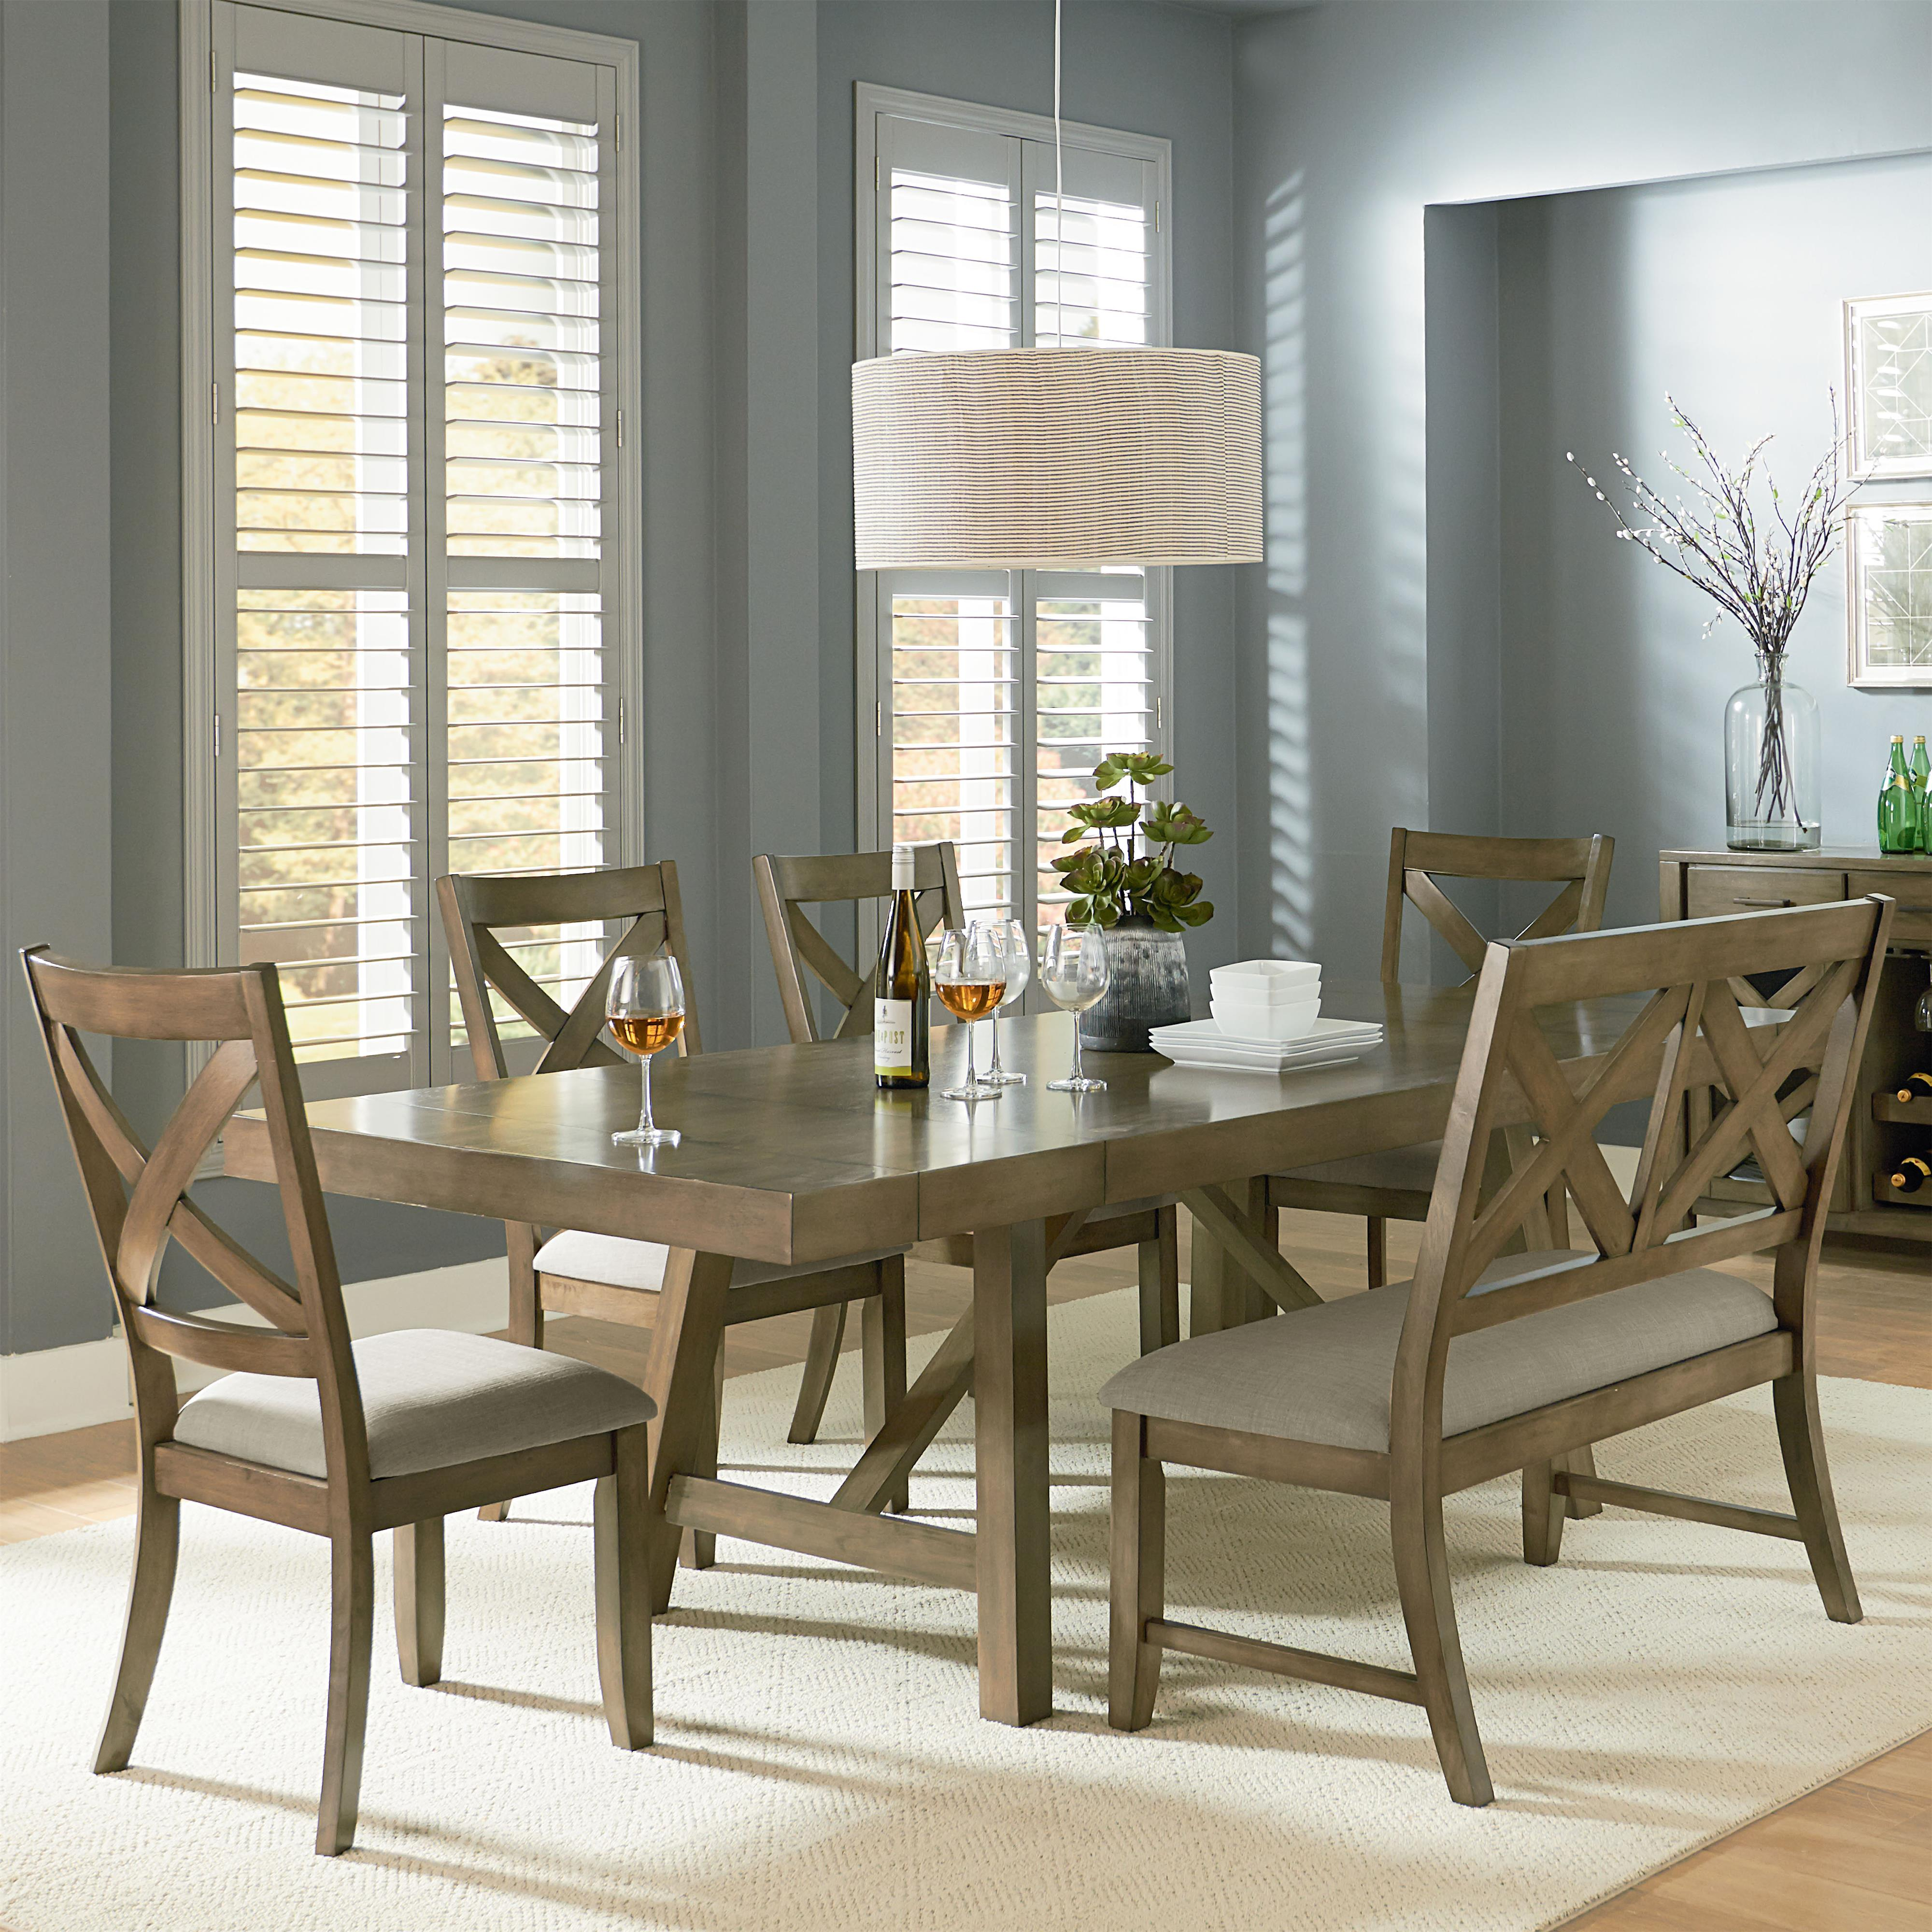 Omaha Grey Trestle Table Dining Set by Standard Furniture at Rooms for Less